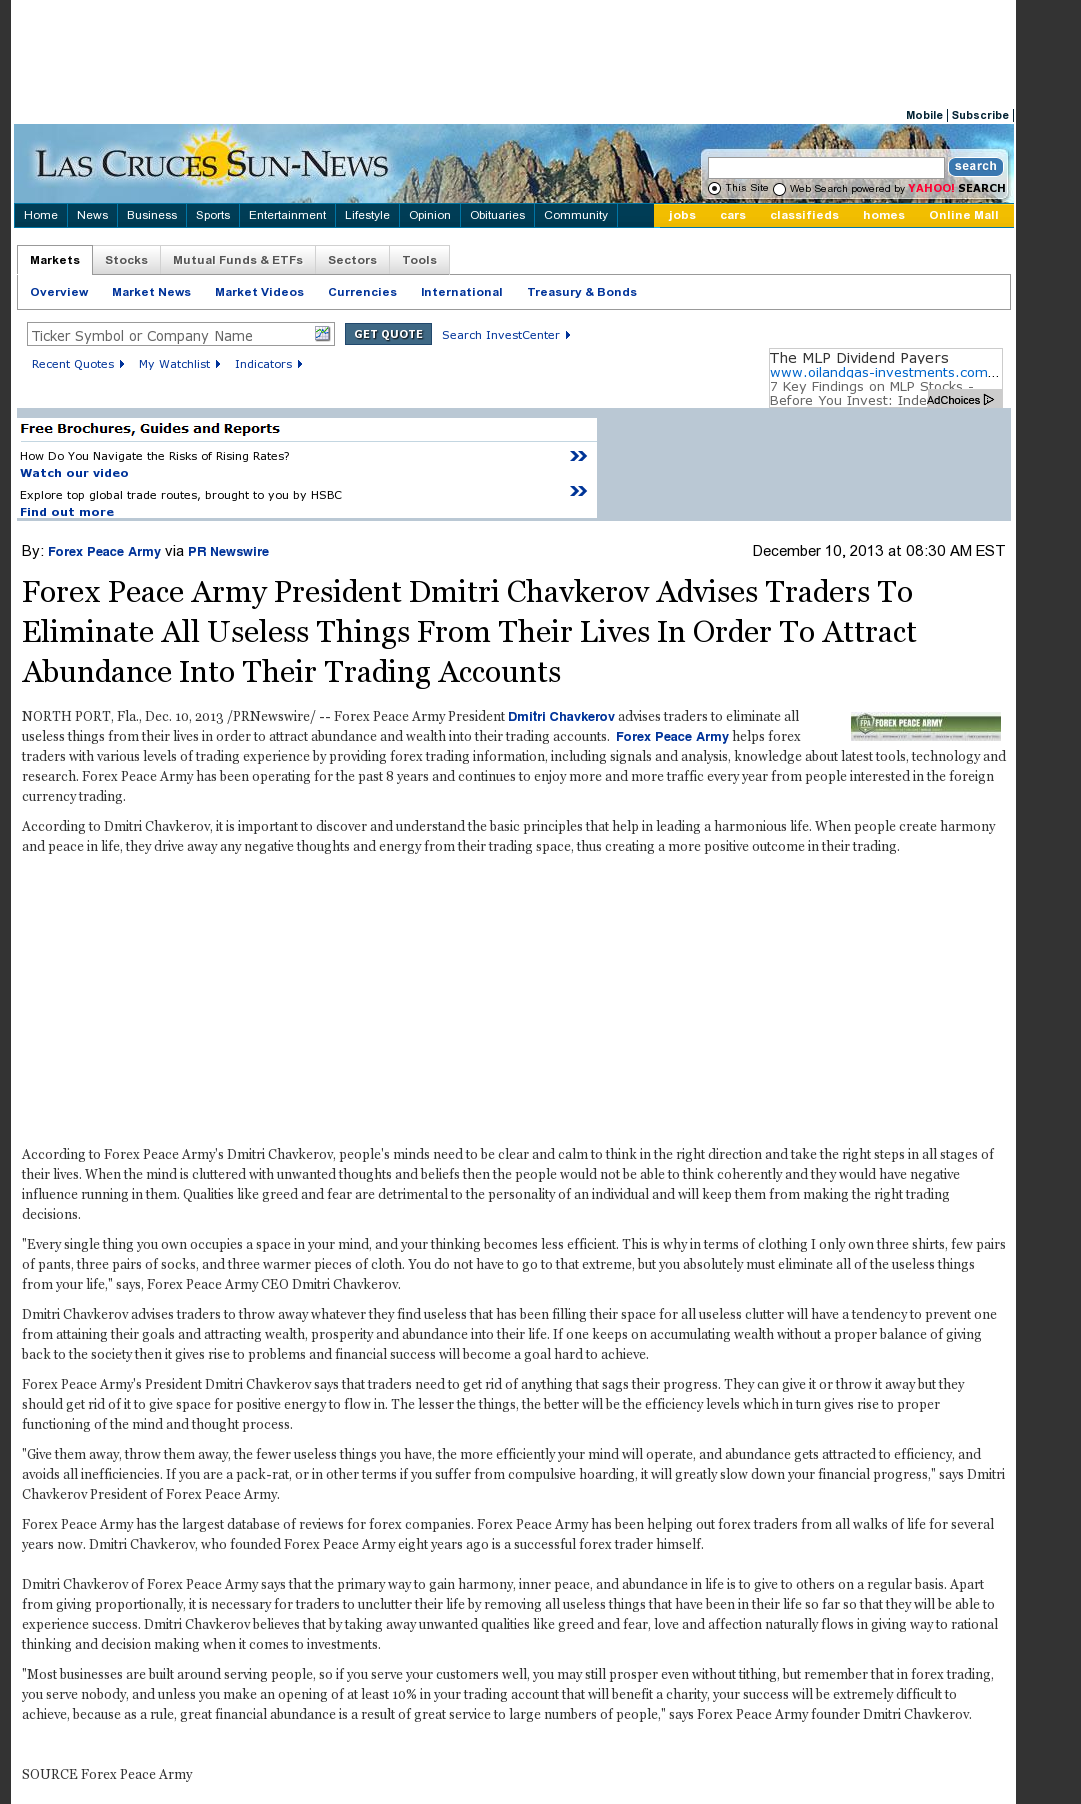 Forex strategy secrets forex peace army